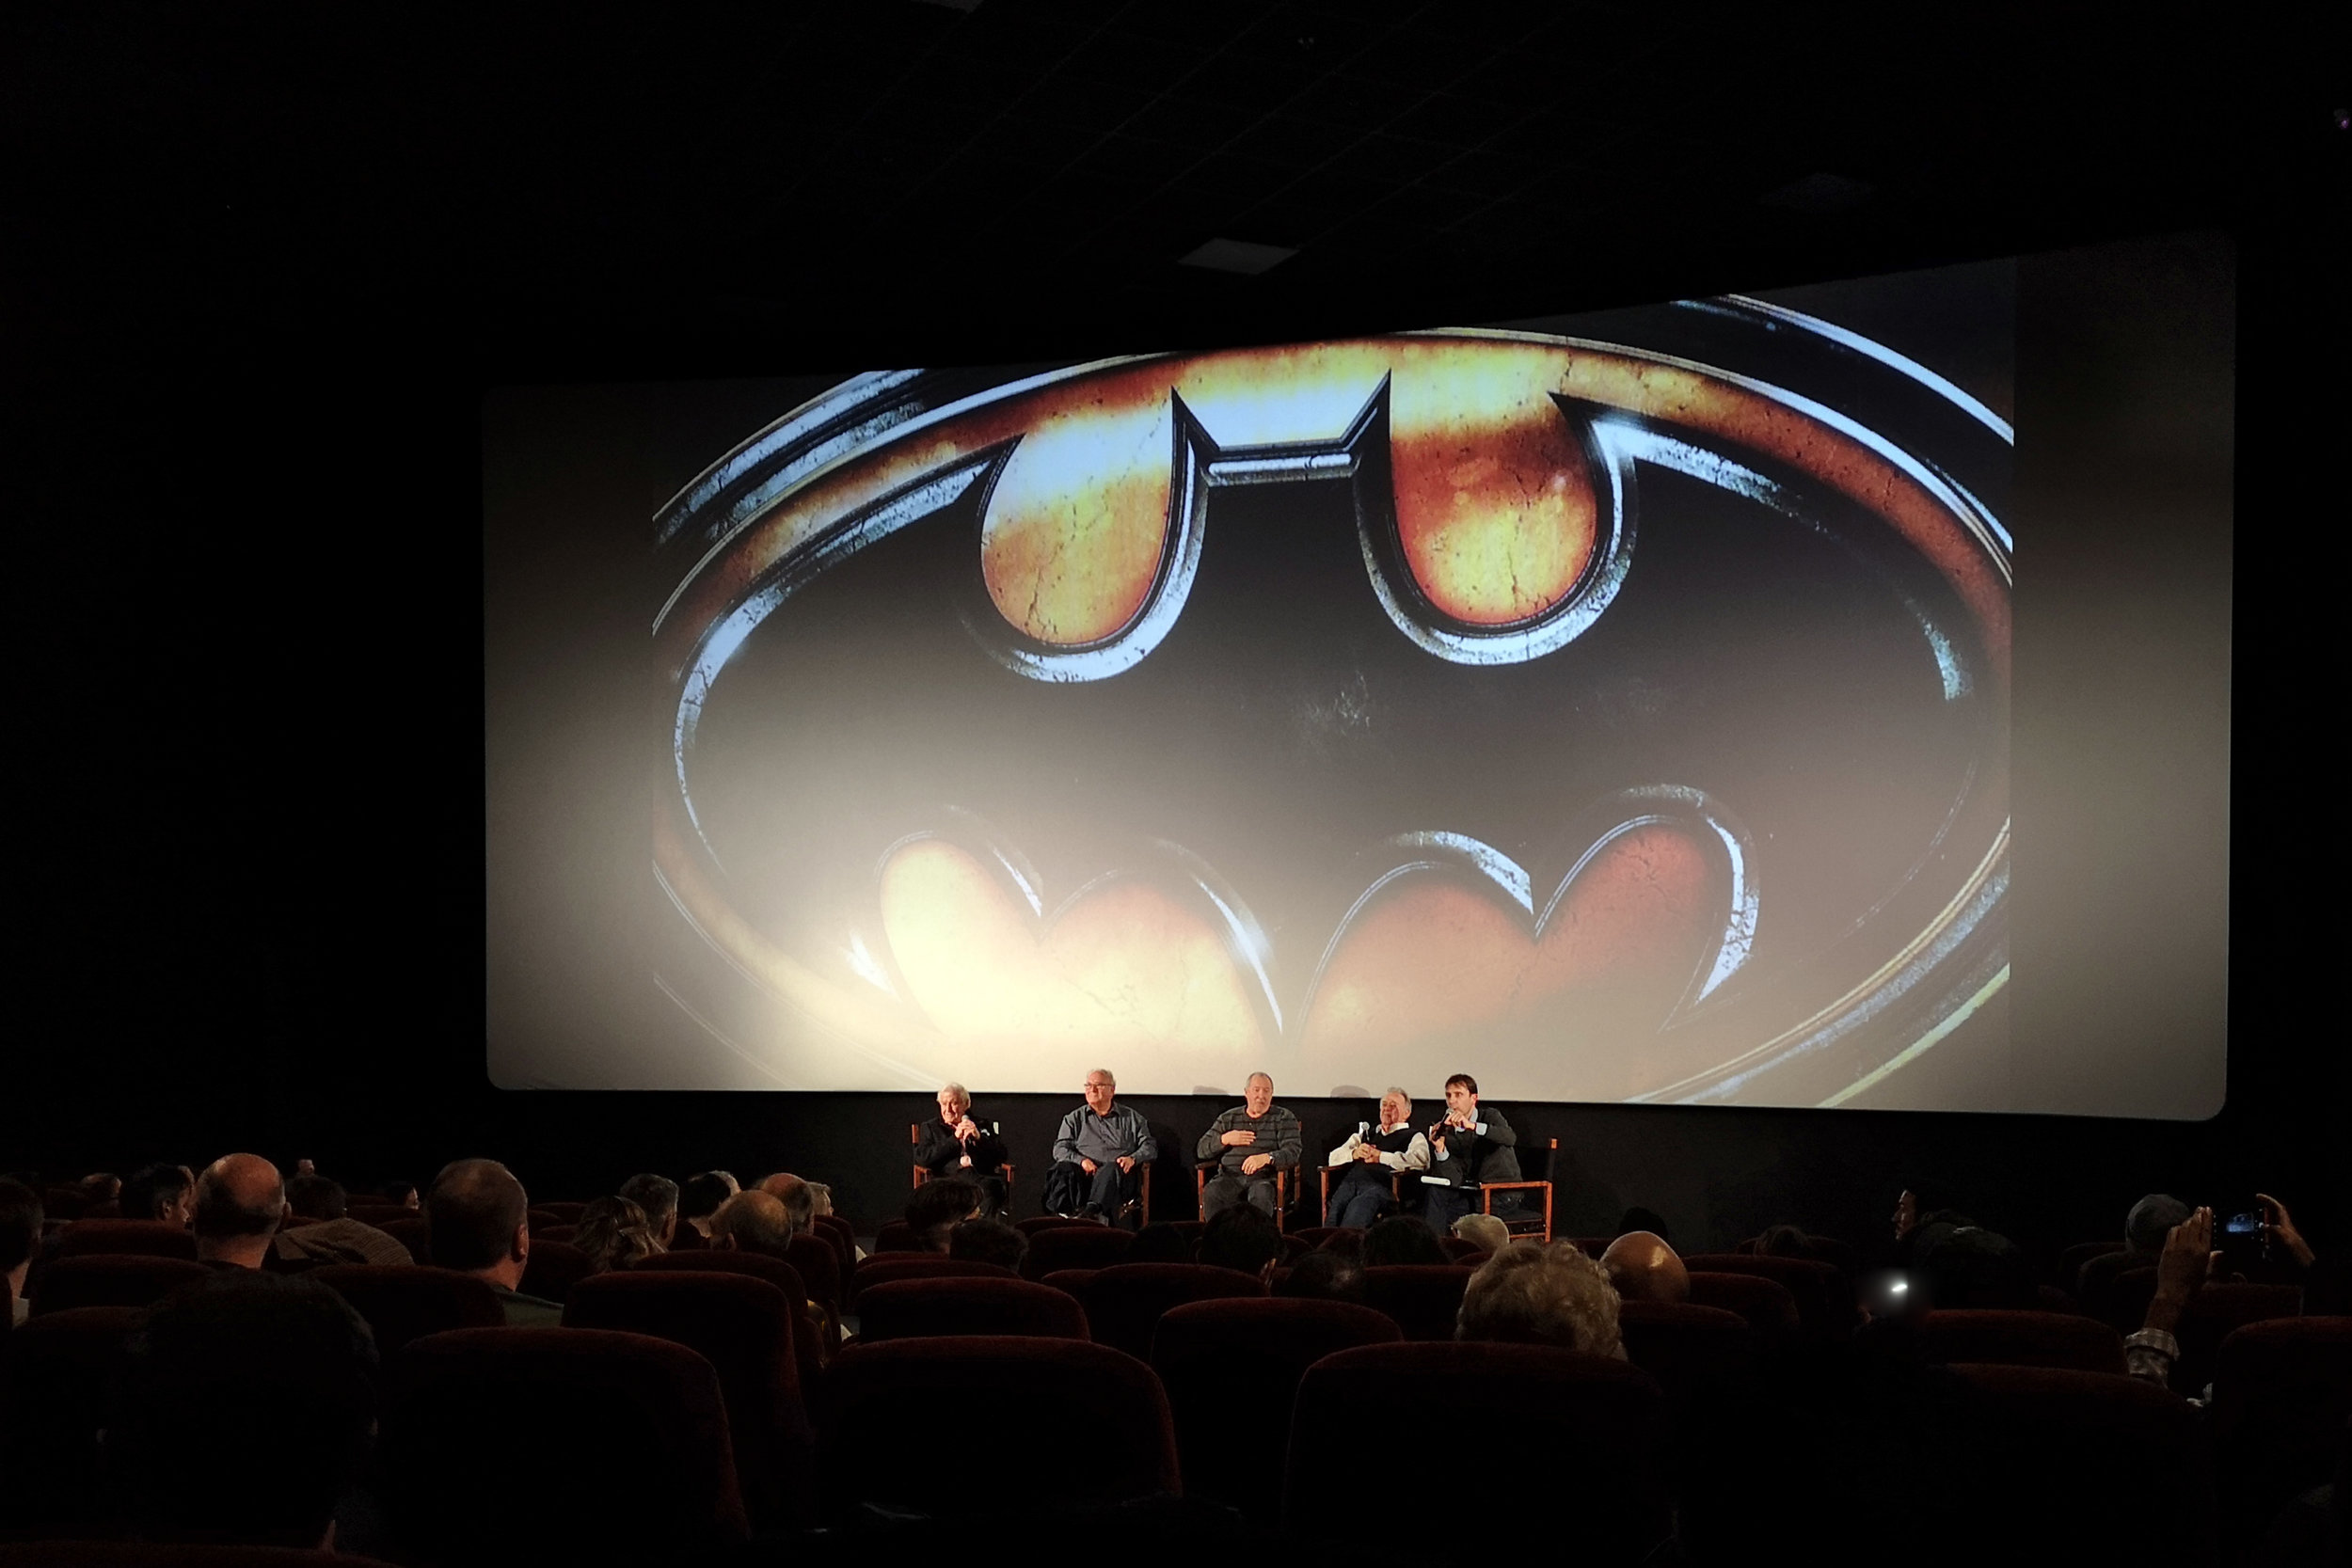 """""""Who'd care about an aftermath when you can have THE MAIN EVENT?""""   From left to right - John Evans (Special Effects Supervisor, 'Batman (1989)'), Terry Ackland-Snow (Art Director, 'Batman (1989)'), Eddy Joseph (Sound Editor, 'Batman (1989)'), Chris Kenny (Co-Producer, 'Batman (1989)'), and interviewer."""